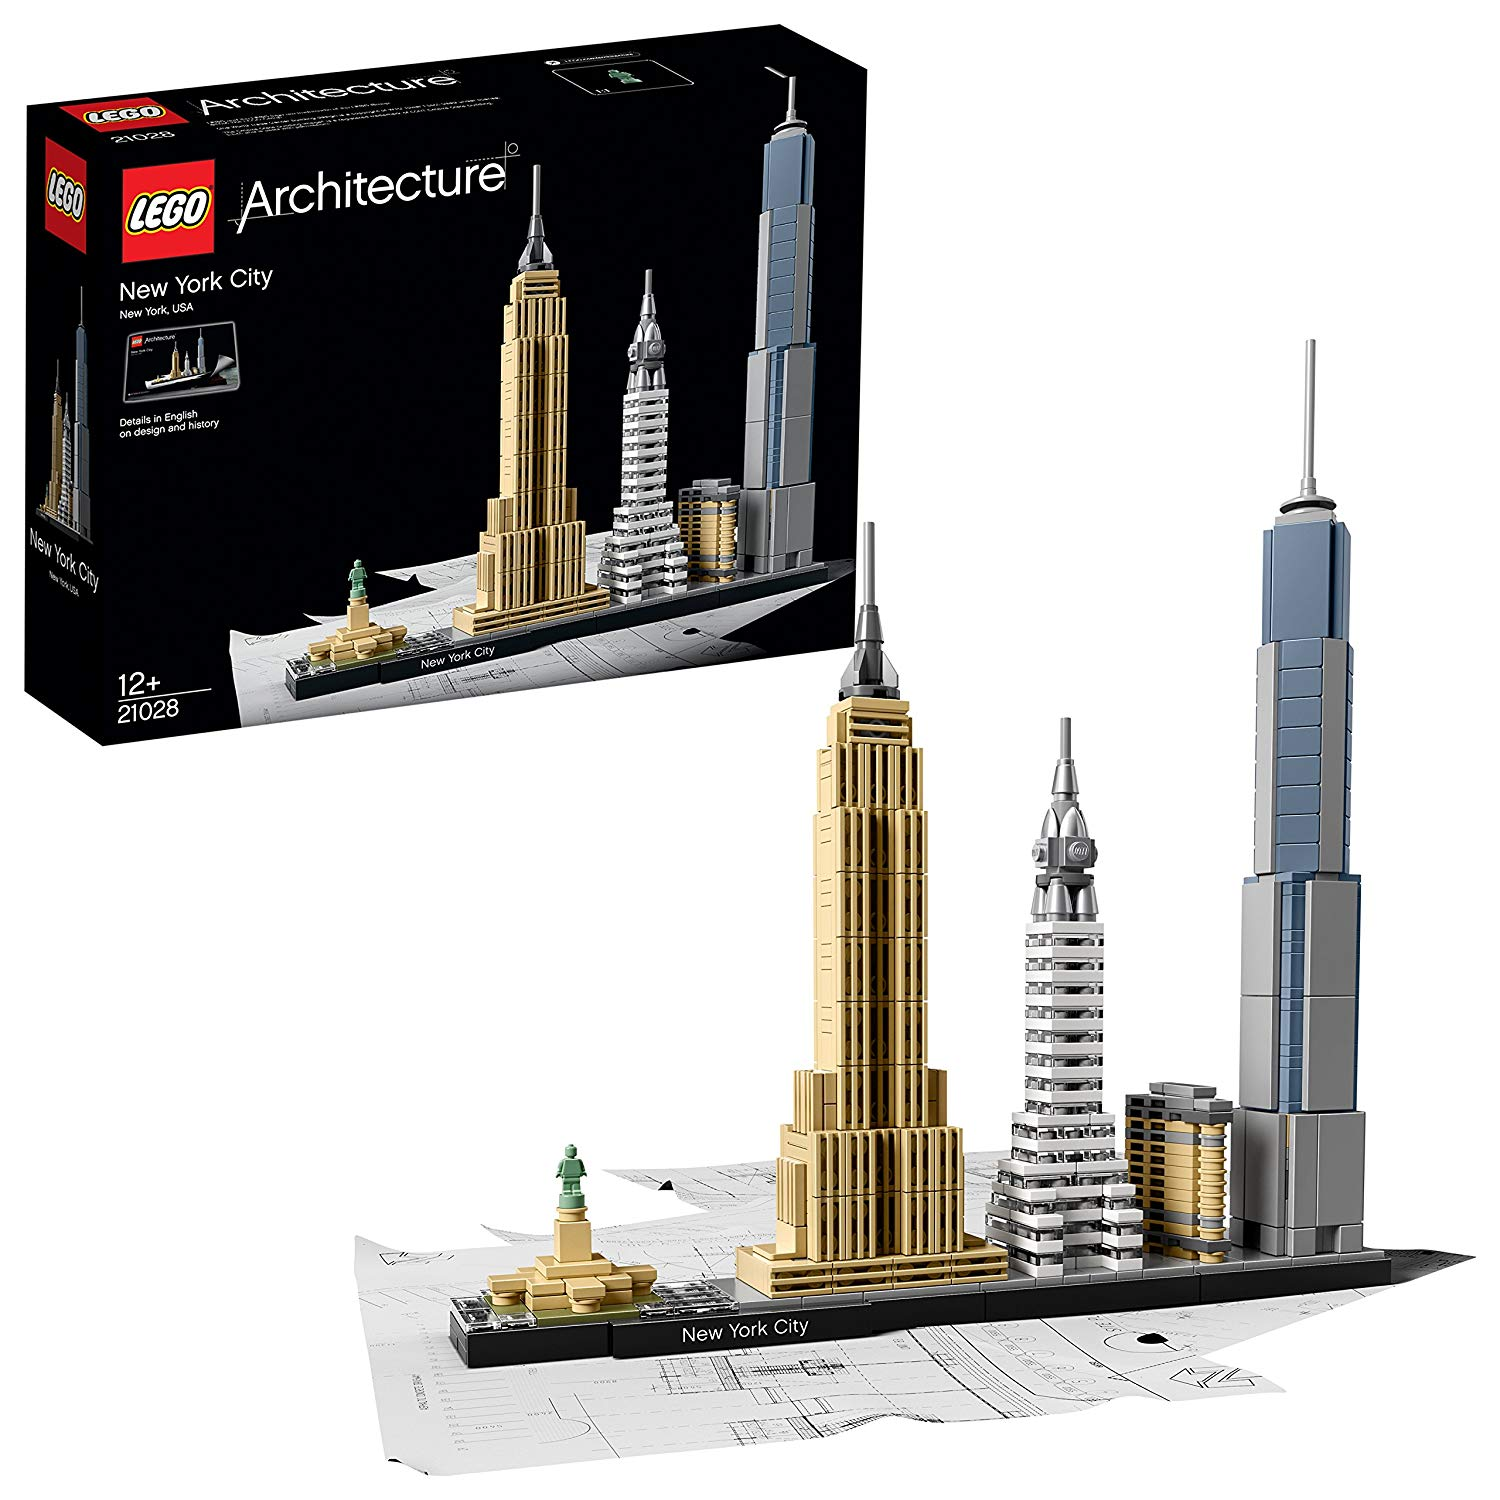 Lego Skyline - New York City